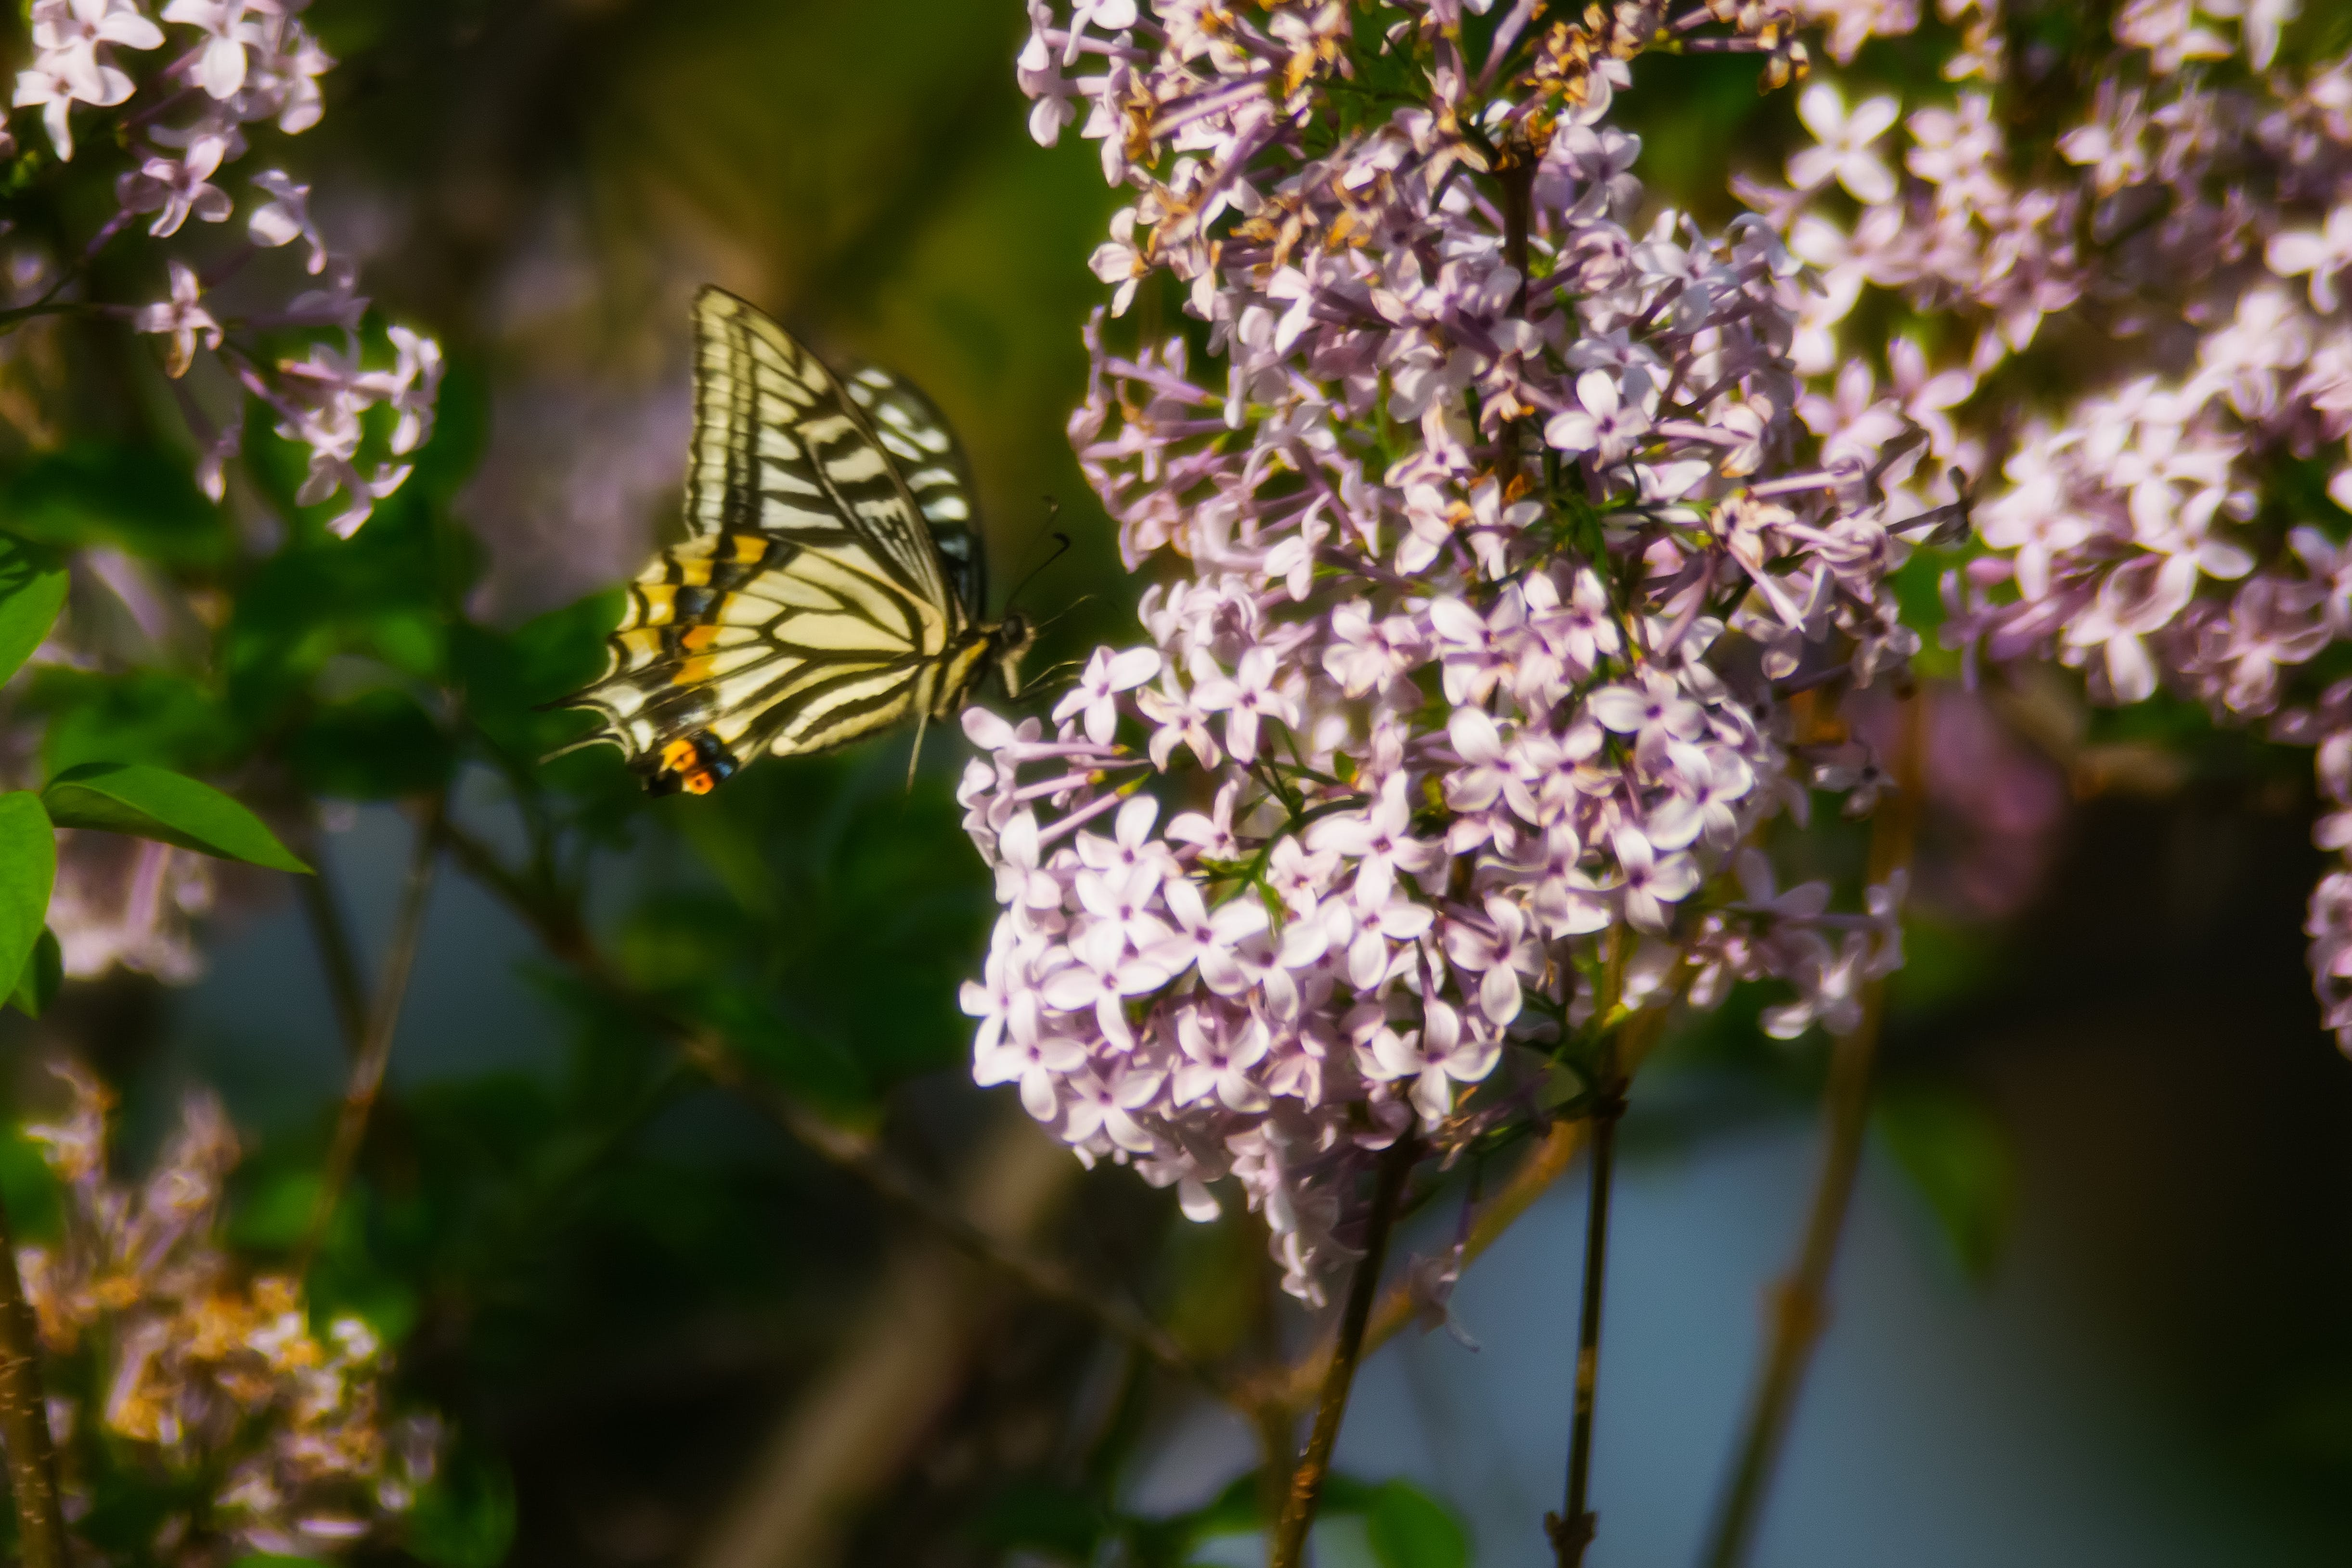 Tiger Swallowtail Butterfly Perched on Pink Petaled Flower at Daytime